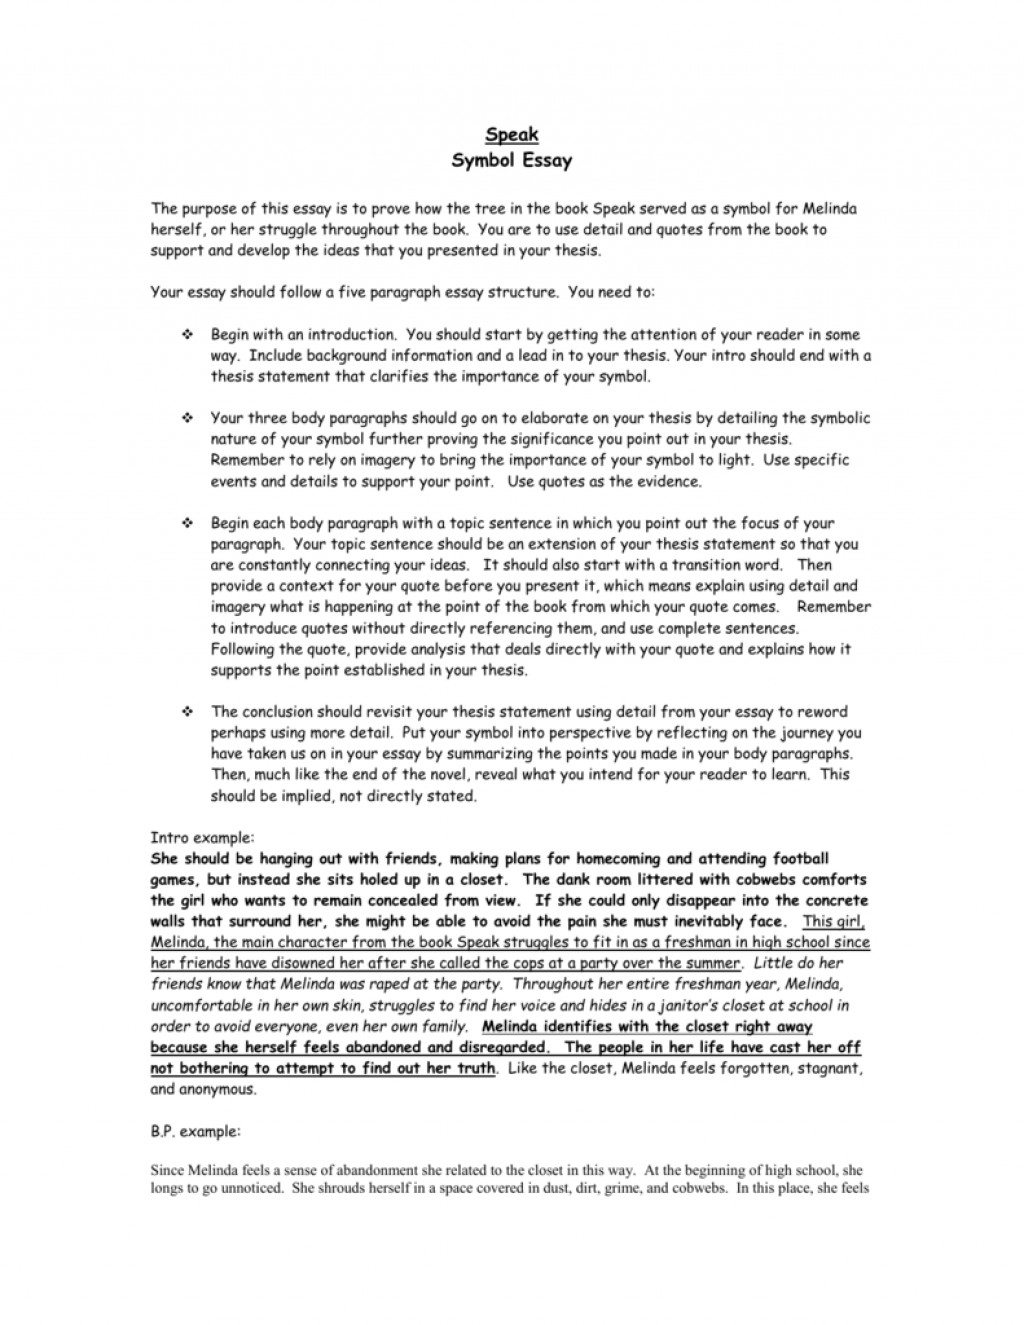 015 How To Start Off Body Paragraph In An Essay 008001873 1 Impressive A The First Words Large